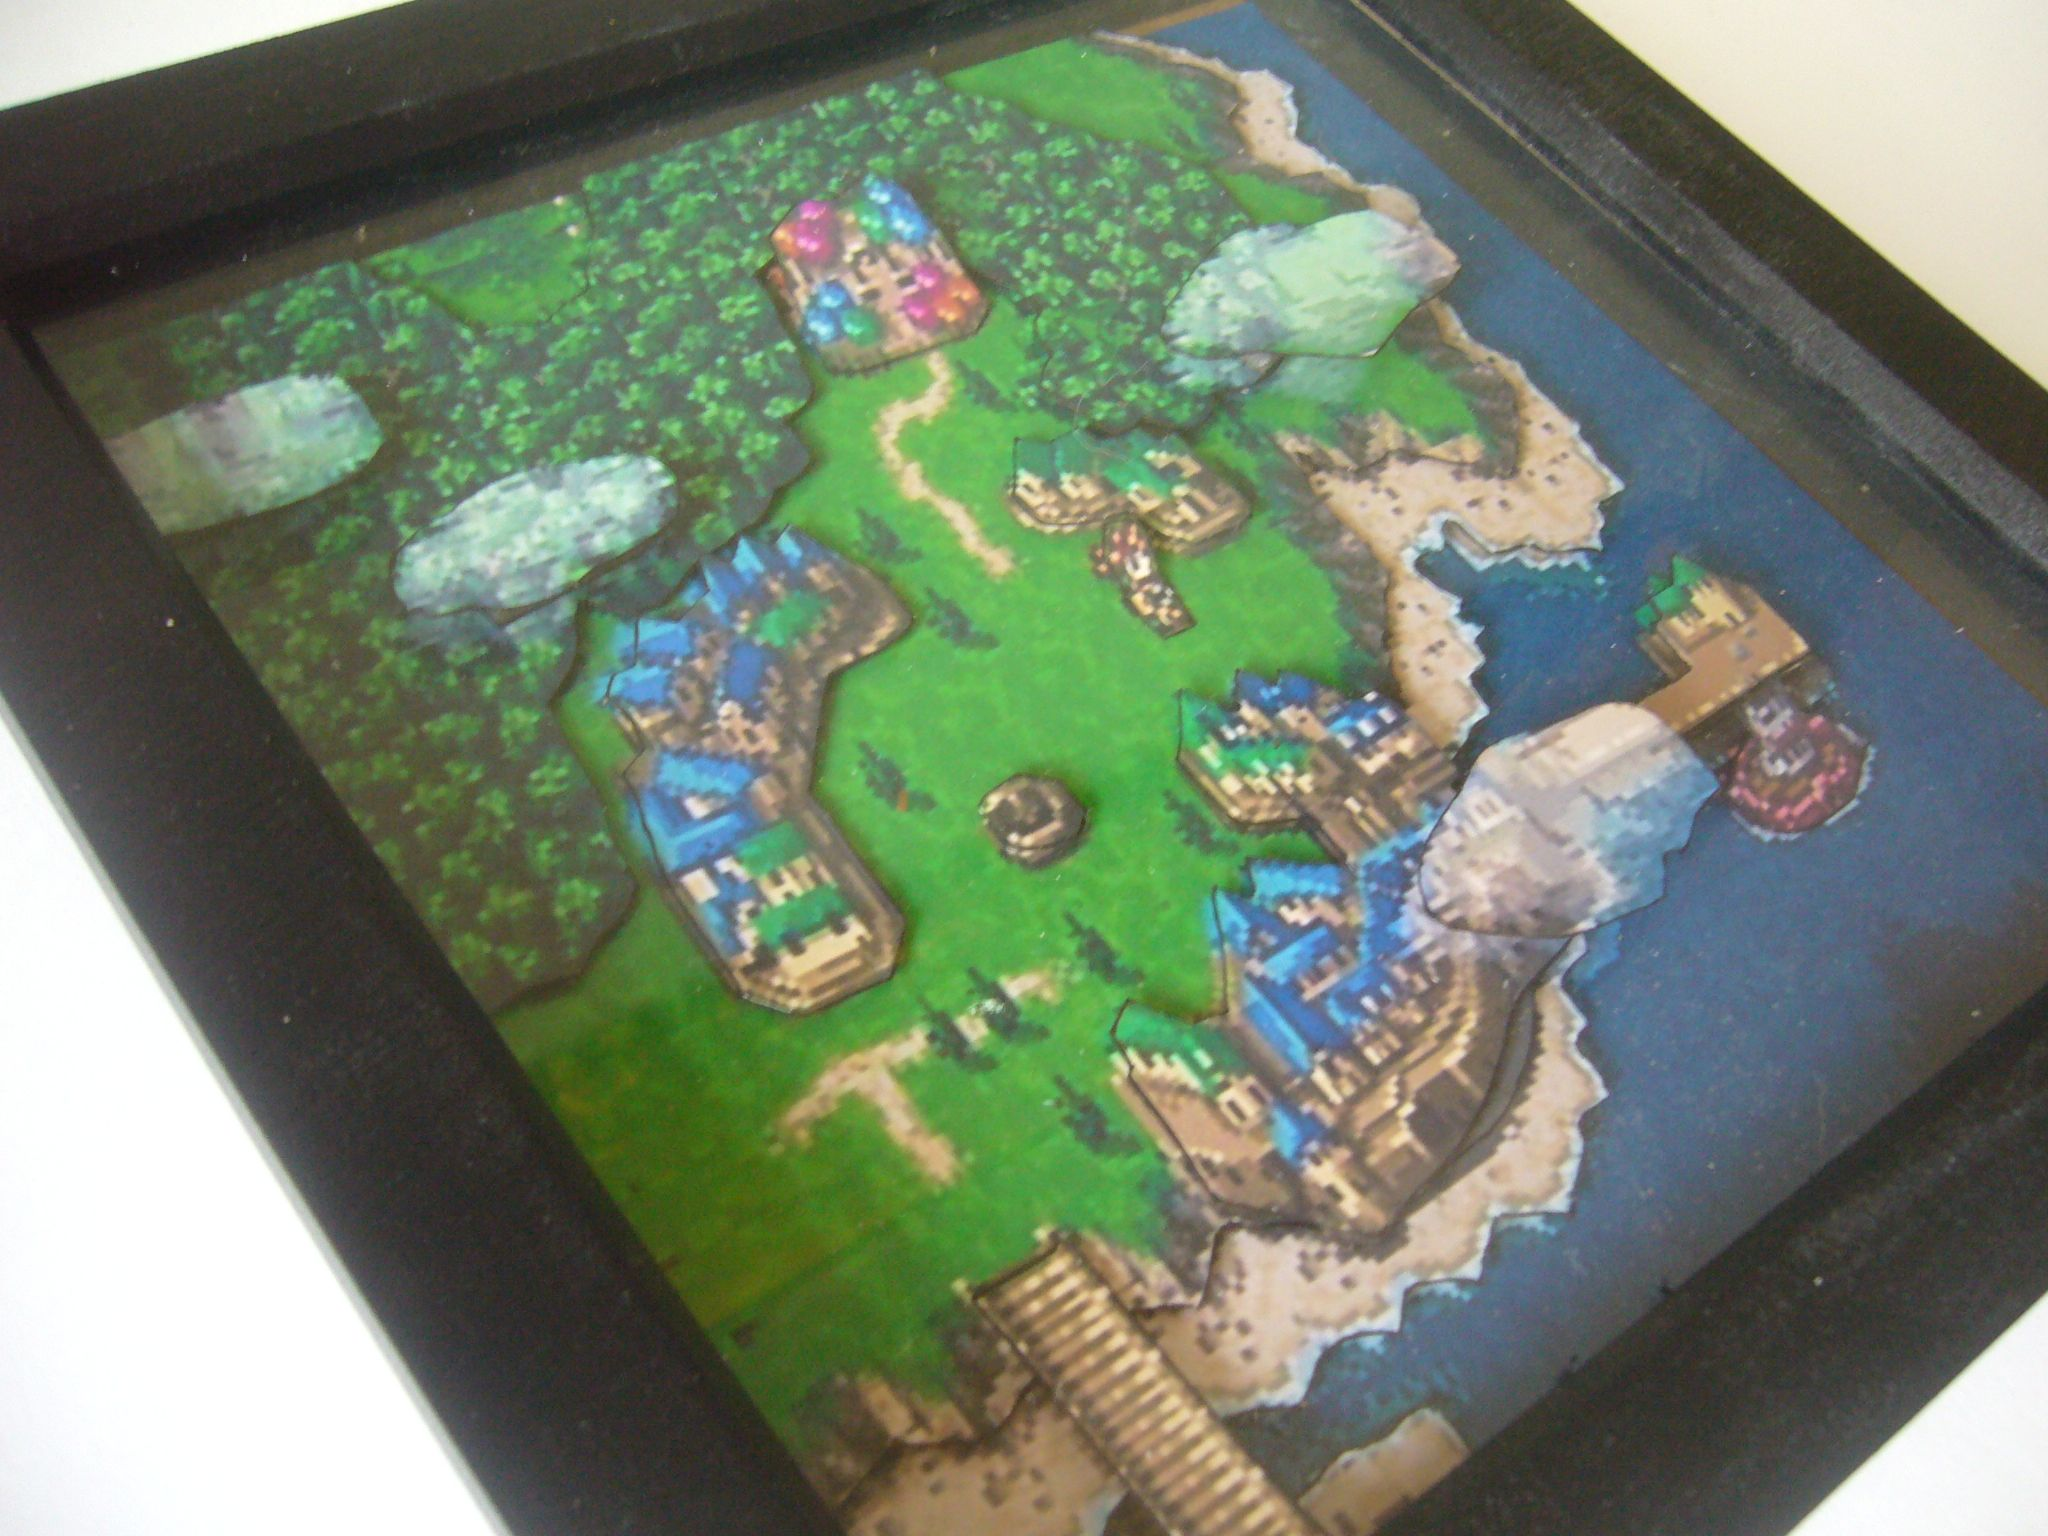 Chrono Trigger World Map 3D Diorama Shadow Box on dragon age: inquisition map, dragon warrior vii map, animal crossing map, alex kidd in miracle world map, conker's bad fur day map, chrono cross map, pillars of eternity map, tales of hearts map, fire emblem map, grand knights history map, mighty bomb jack map, the elder scrolls v: skyrim map, mortal kombat x map, super ghouls 'n ghosts map, kingdom hearts birth by sleep map, baldur's gate ii map, grand theft auto: san andreas map, assassin's creed unity map, drakengard map, earthbound map,